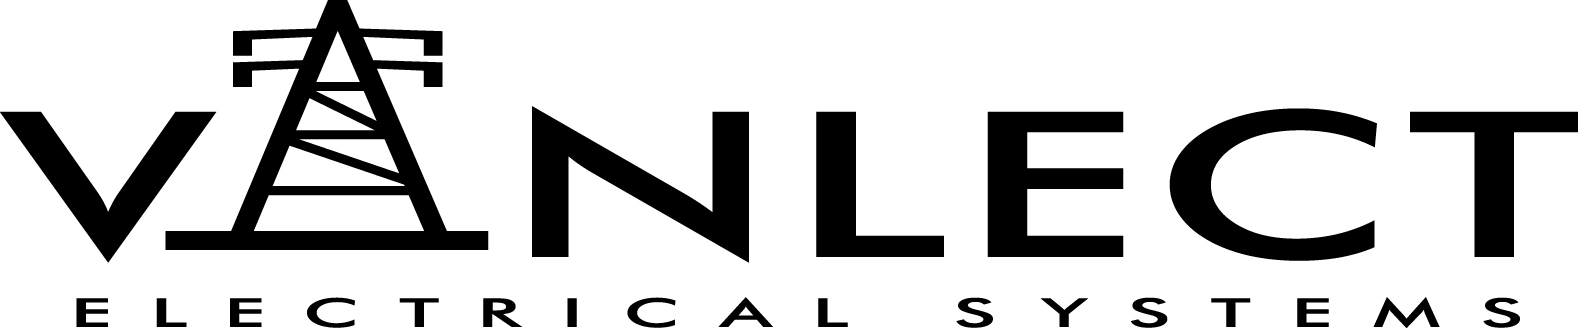 Vanlect Electrical Systems CC